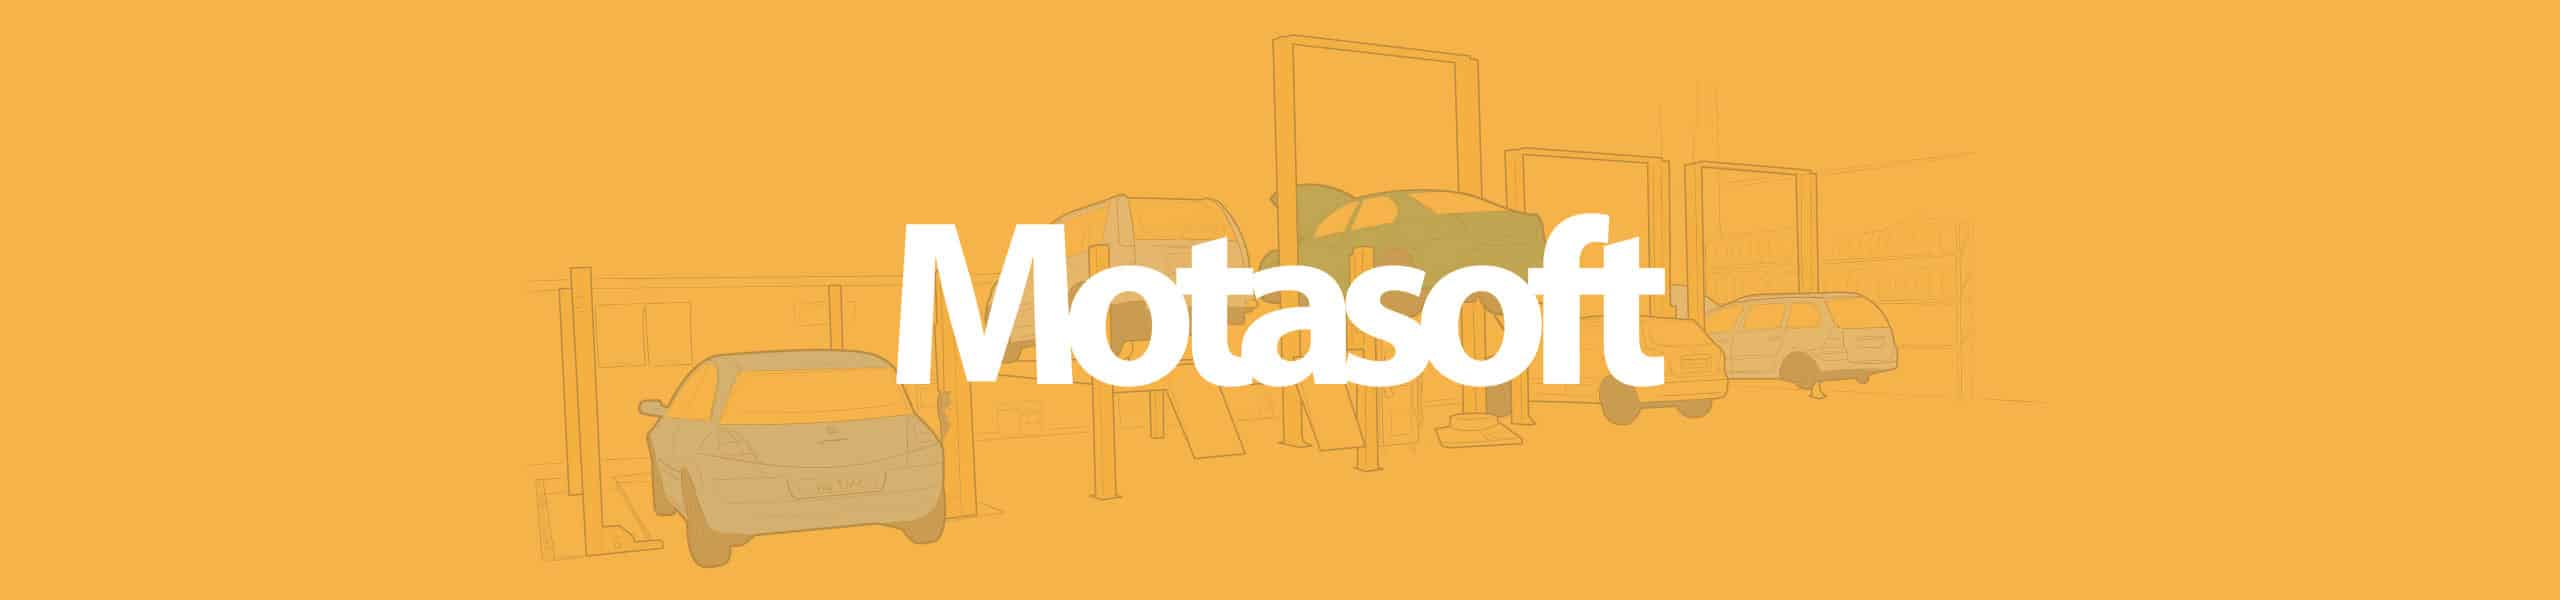 Motasoft graphic